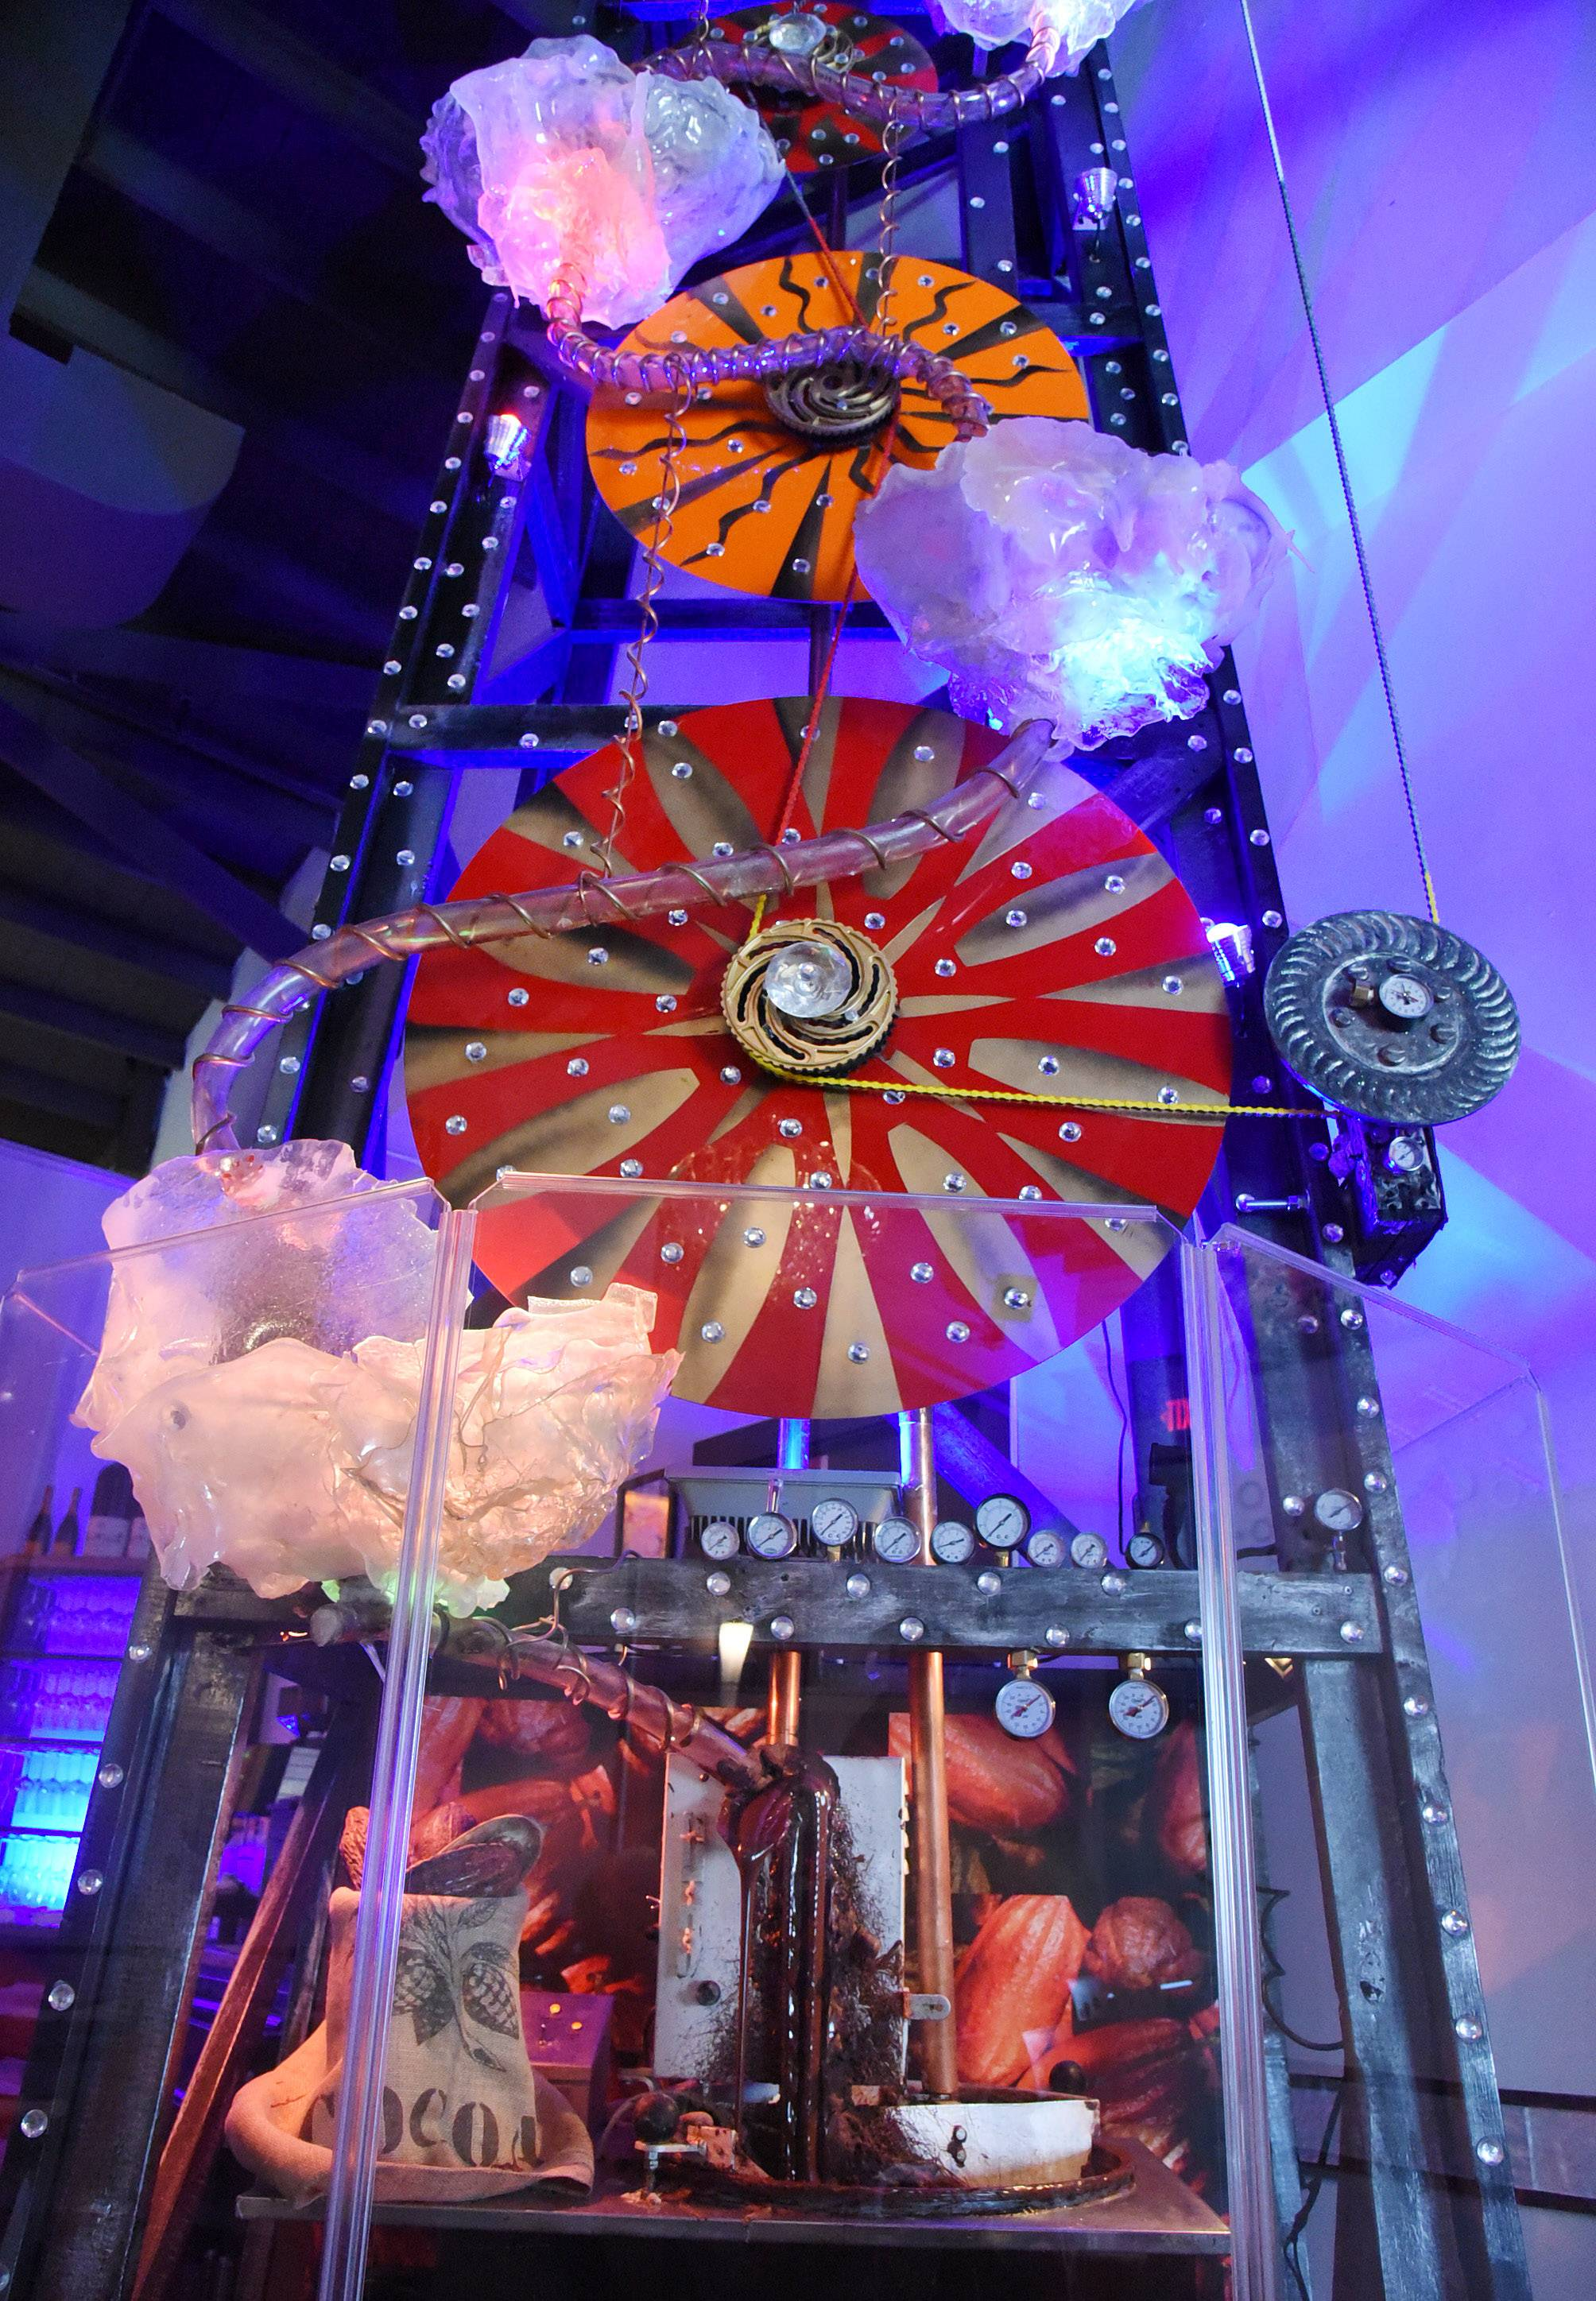 Primo's signature 23-foot-tall rig pumps about 200 pounds of melted chocolate an hour.